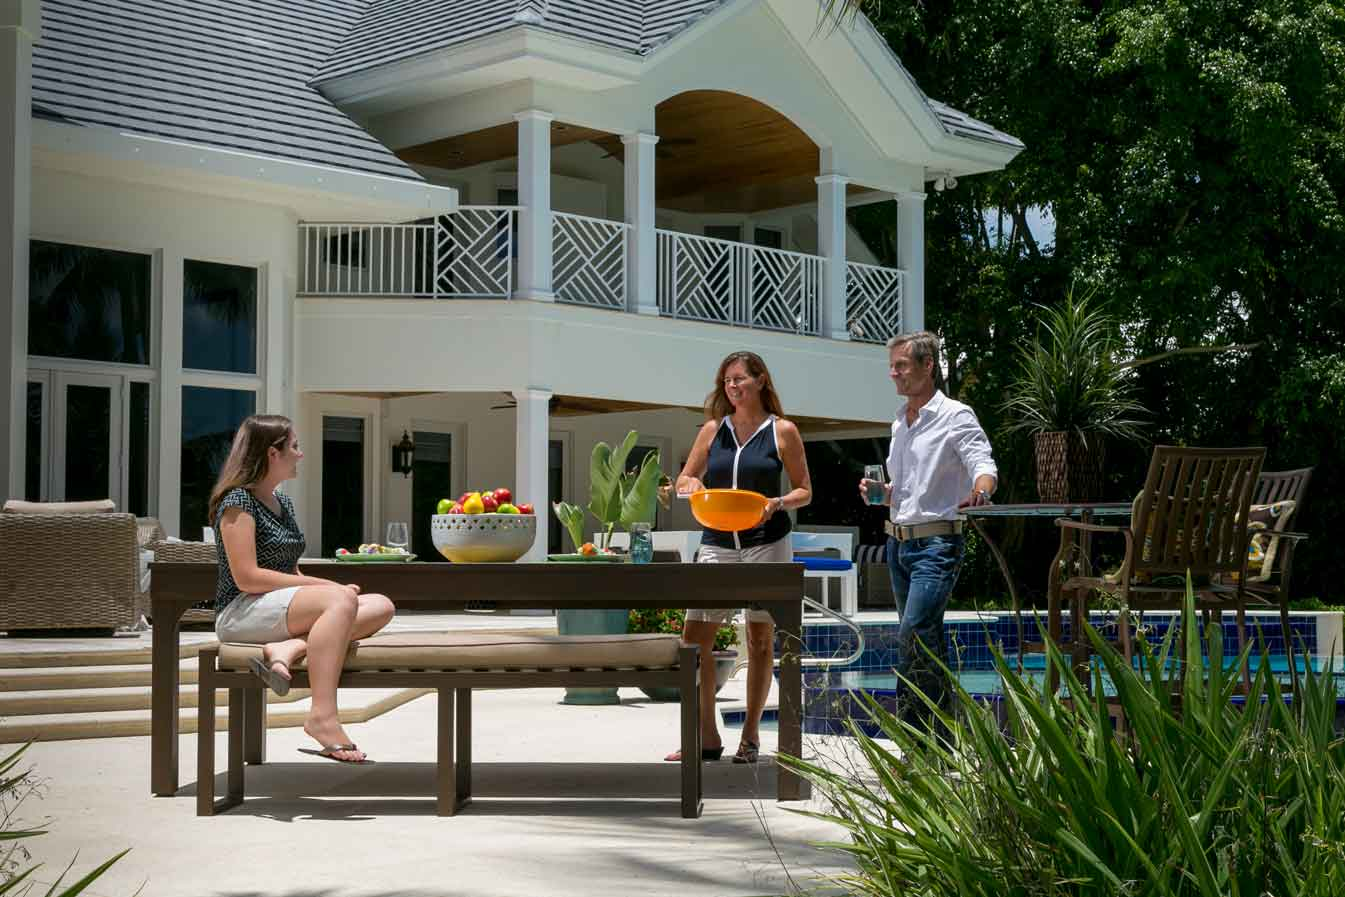 Family enjoying their outdoor entertaining space with a custom outdoor pool table converted for dining